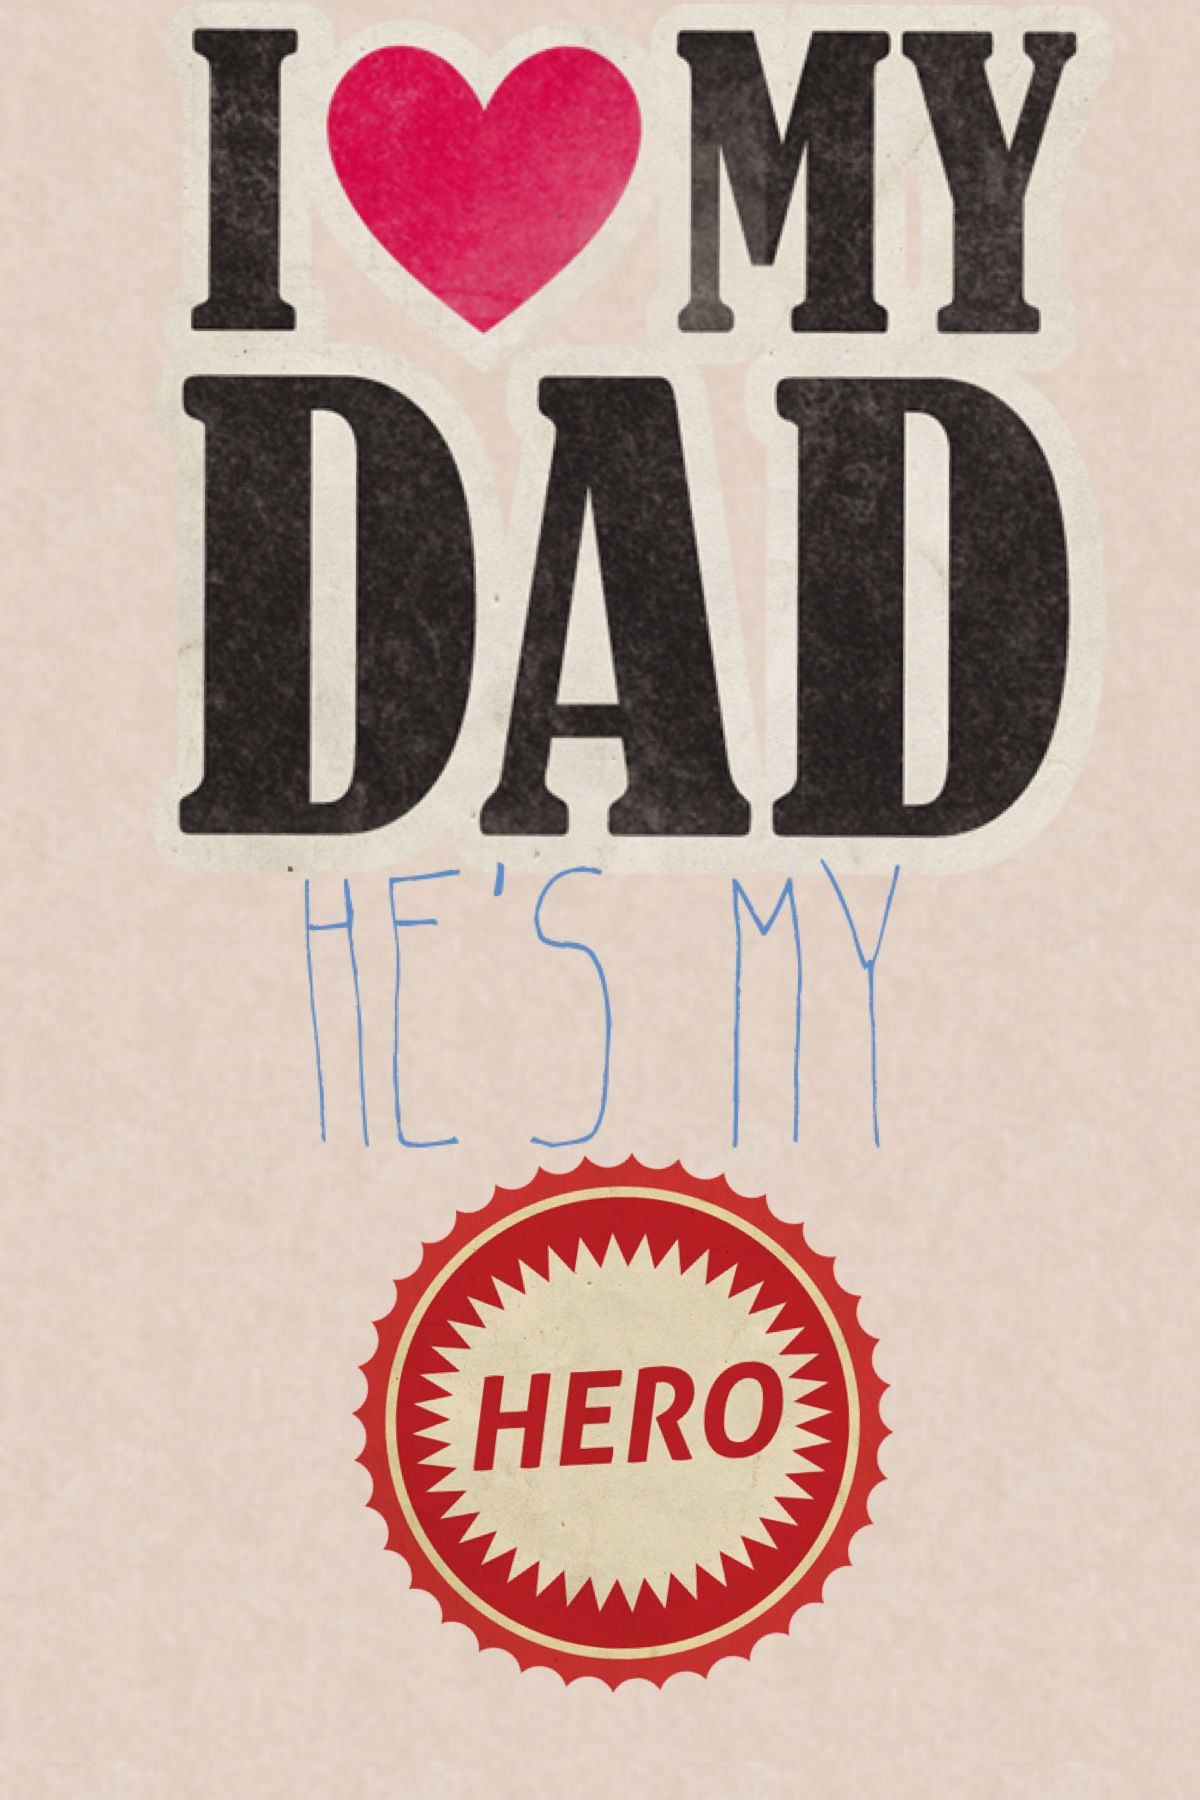 Wallpaper I Love You Daddy : iPhone 5 wallpaper IPHONE WALLPAPERS Pinterest Wallpaper and Wallpaper backgrounds